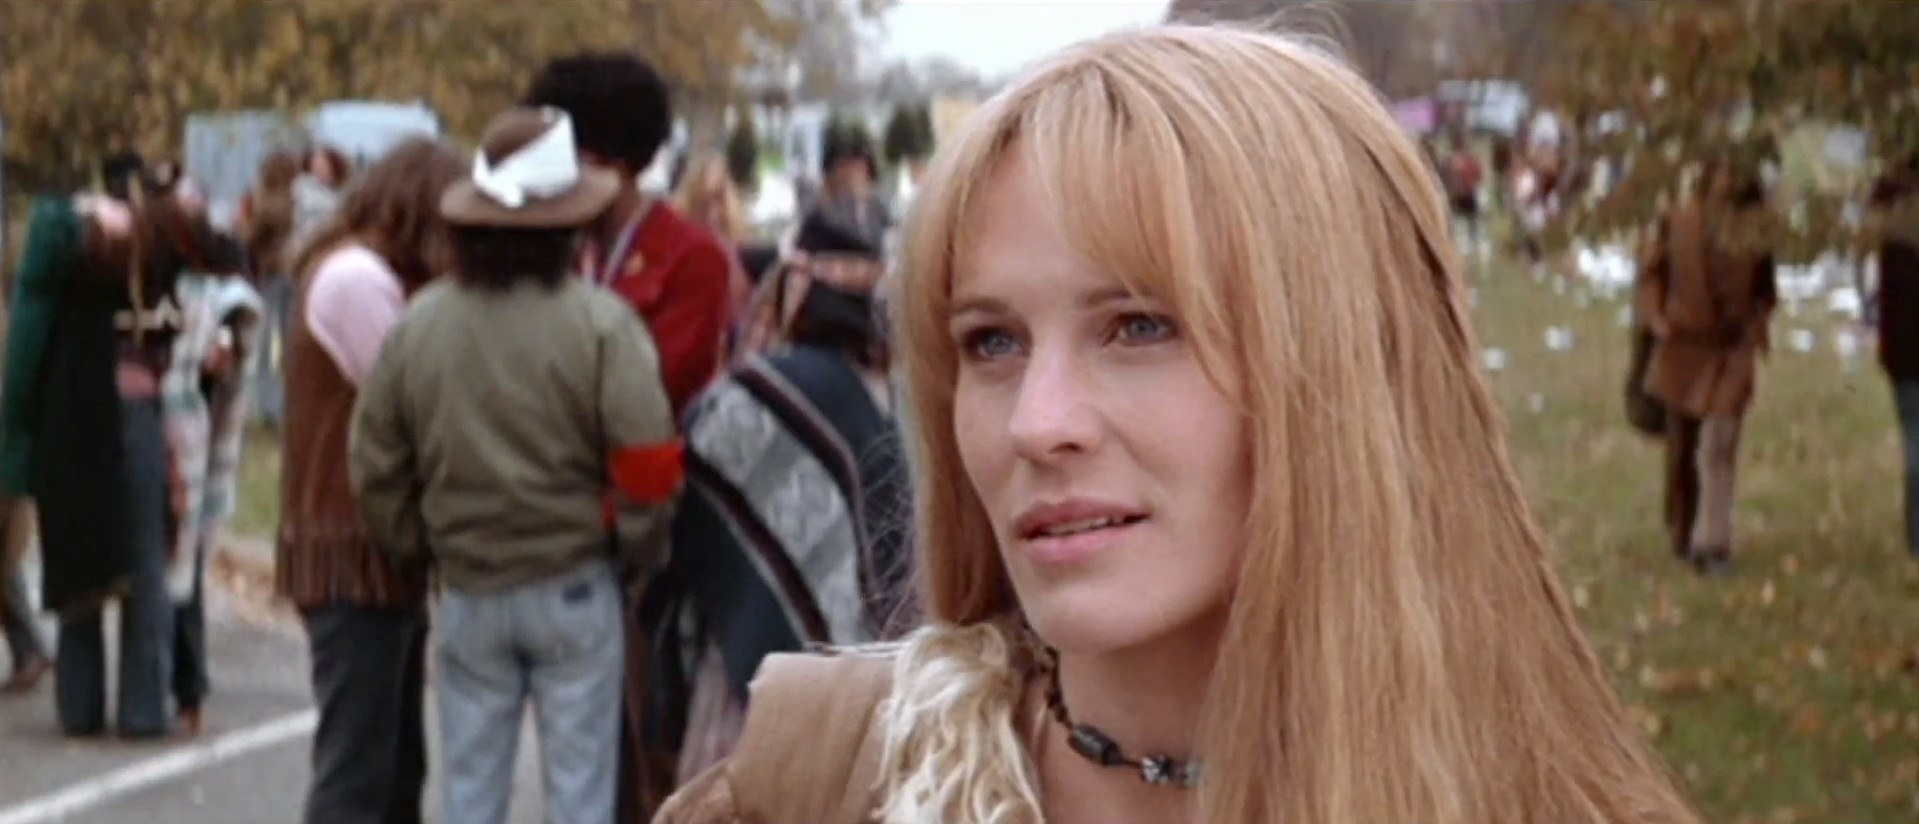 Jenny looking at Forrest, long hair wearing hippie clothes, happy to be reuniting with him at a protest in Washington, D.C